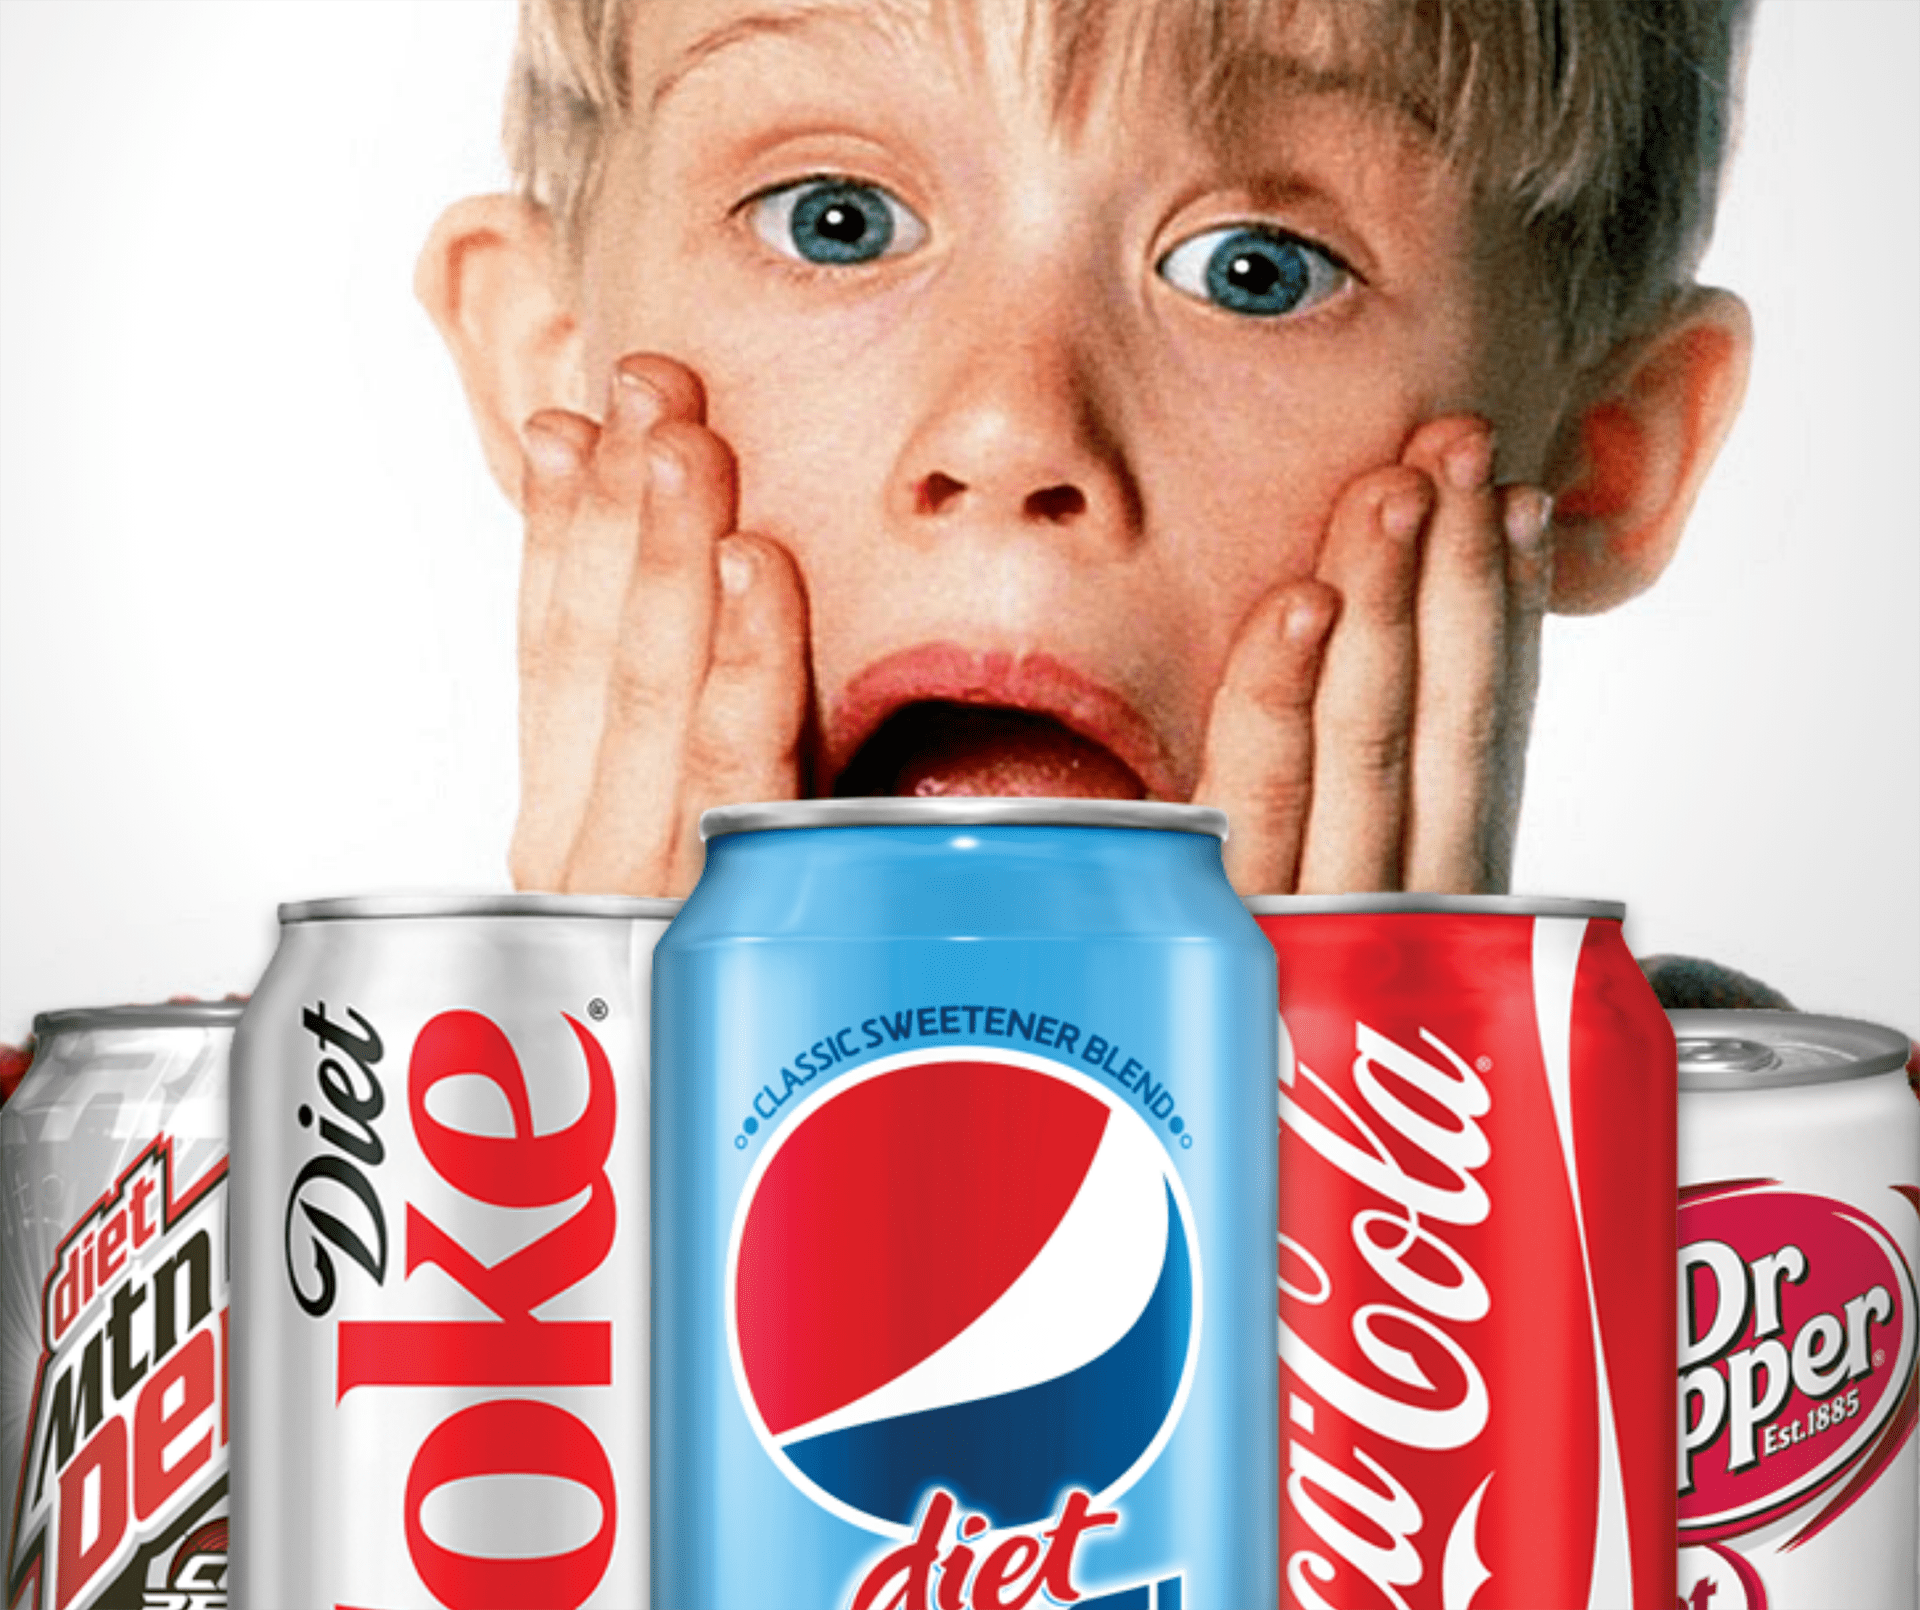 Artificial Sweeteners Make You Crave More Sweets: 8 Nonnutritive Sweeteners For Children To Avoid If Possible 1